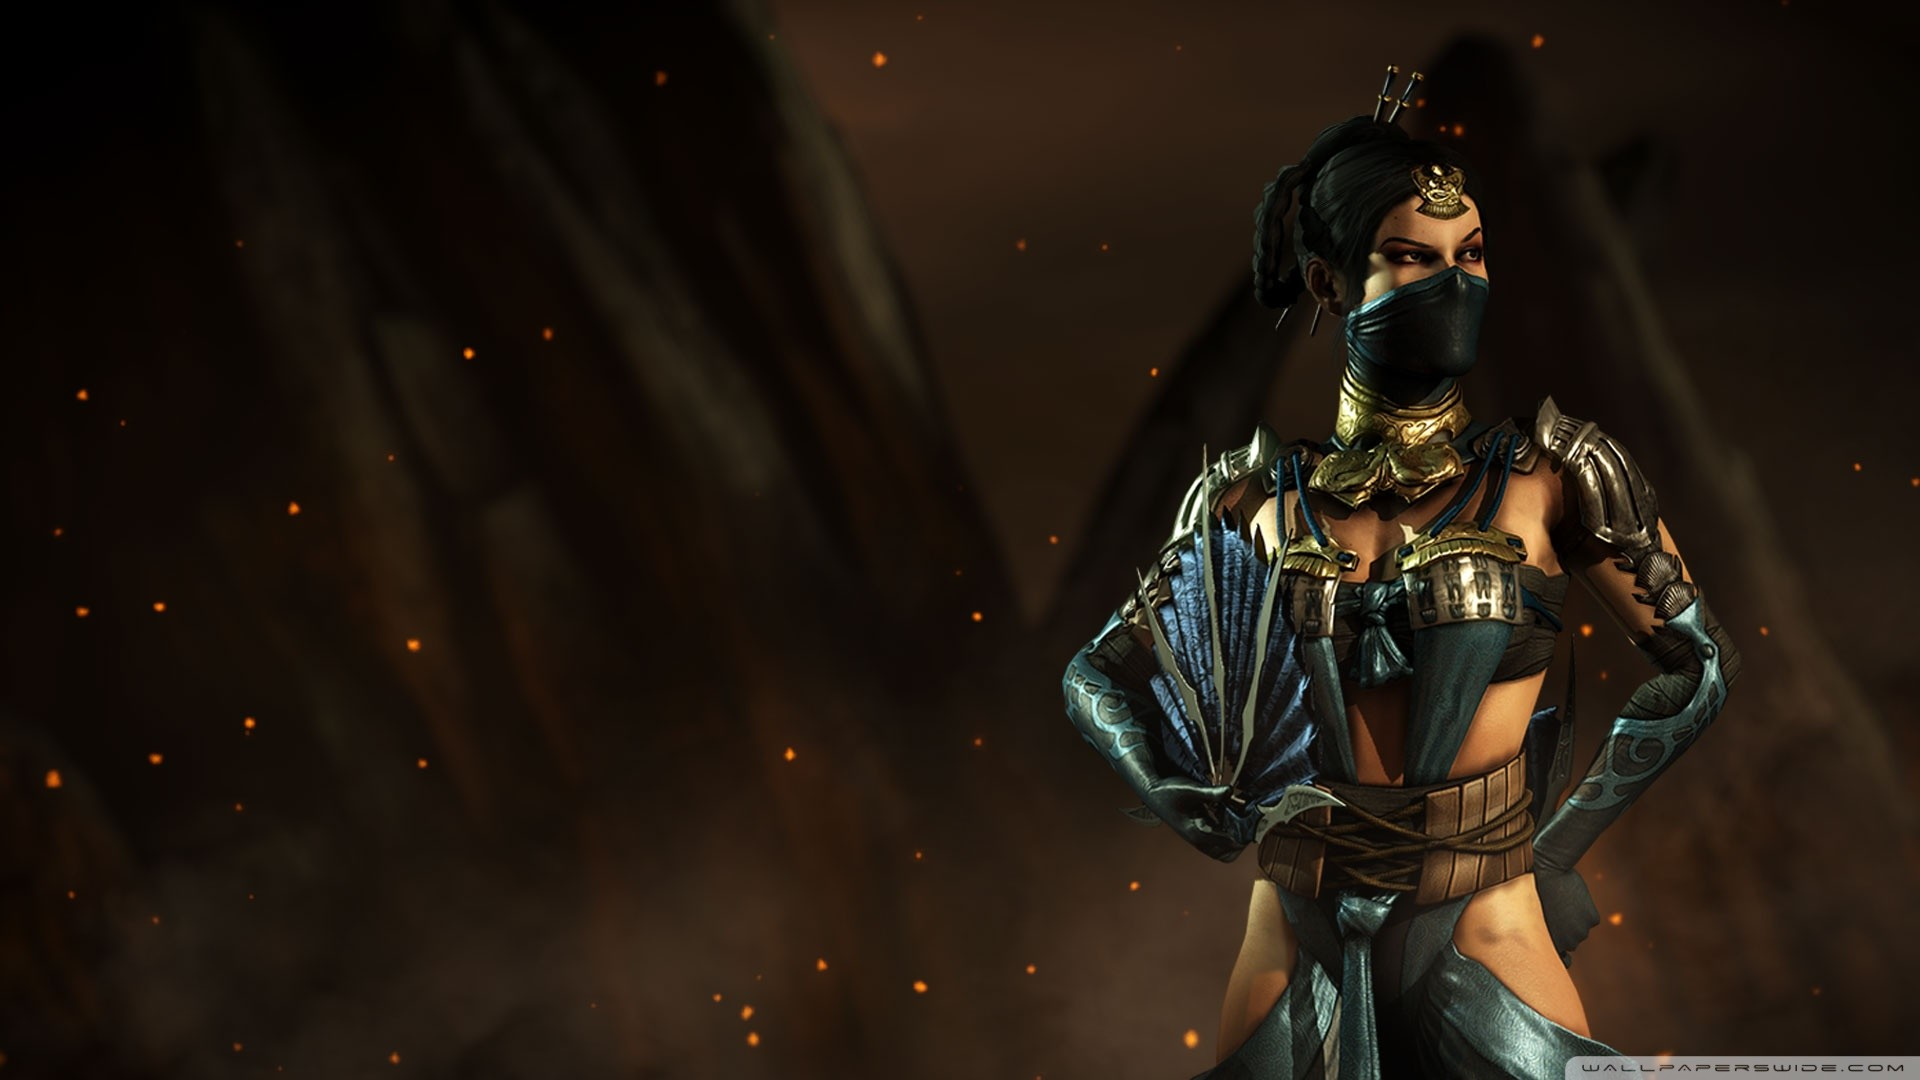 Mortal Kombat Kitana Wallpaper 64 Images